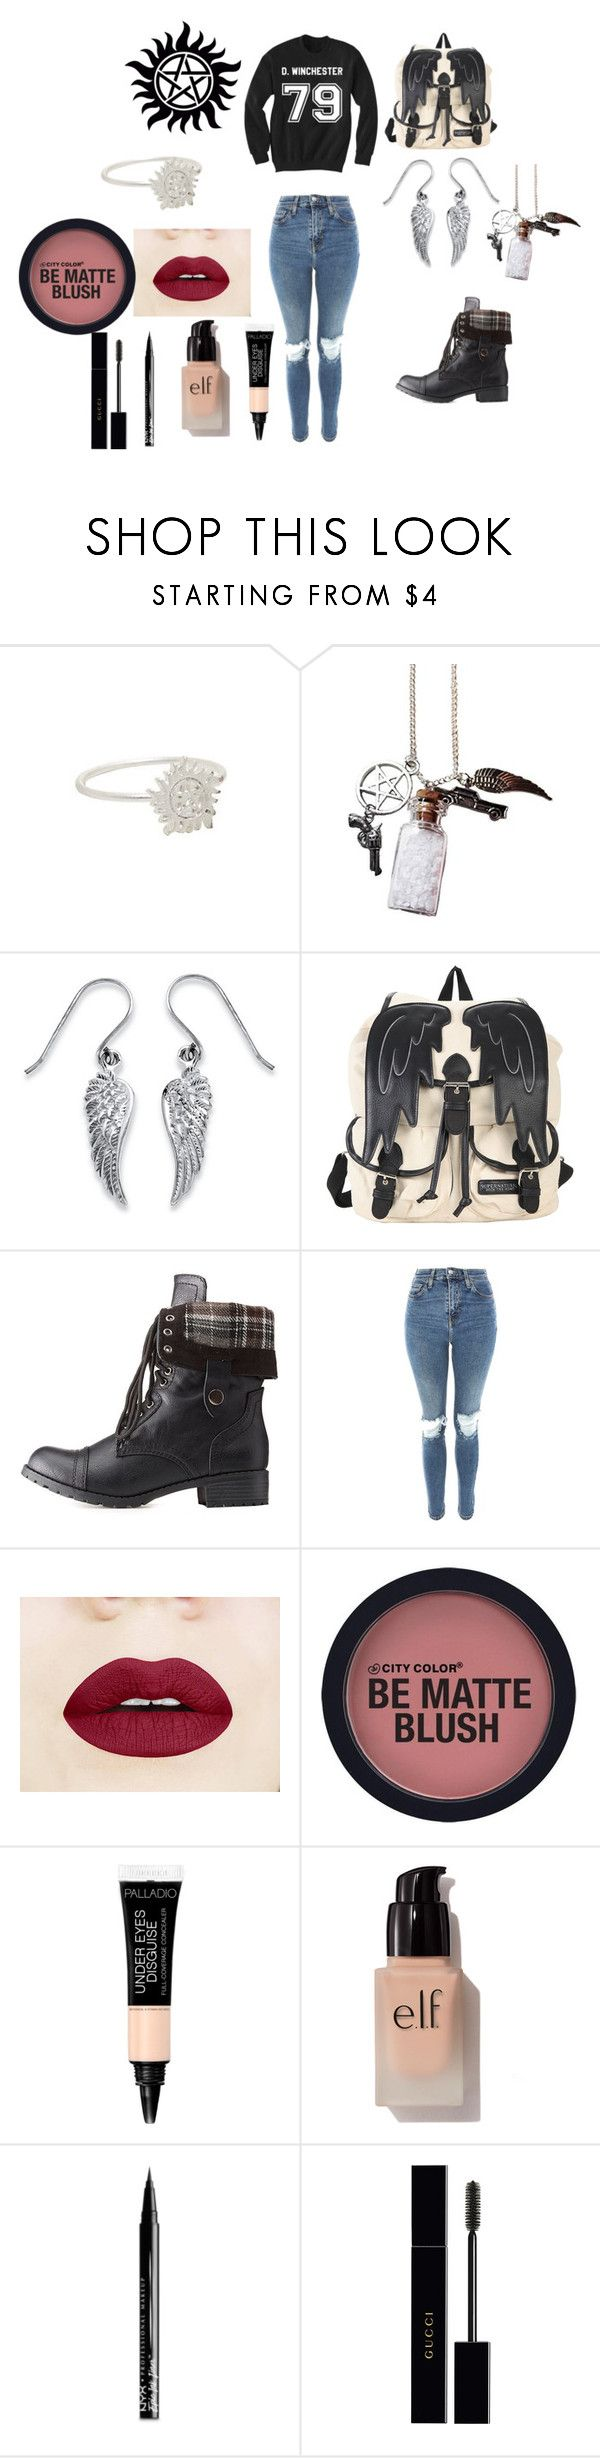 """Supernatural Outfit"" by elisenall on Polyvore featuring Palm Beach Jewelry, Hot Topic, Charlotte Russe, Topshop, e.l.f., NYX and Gucci"